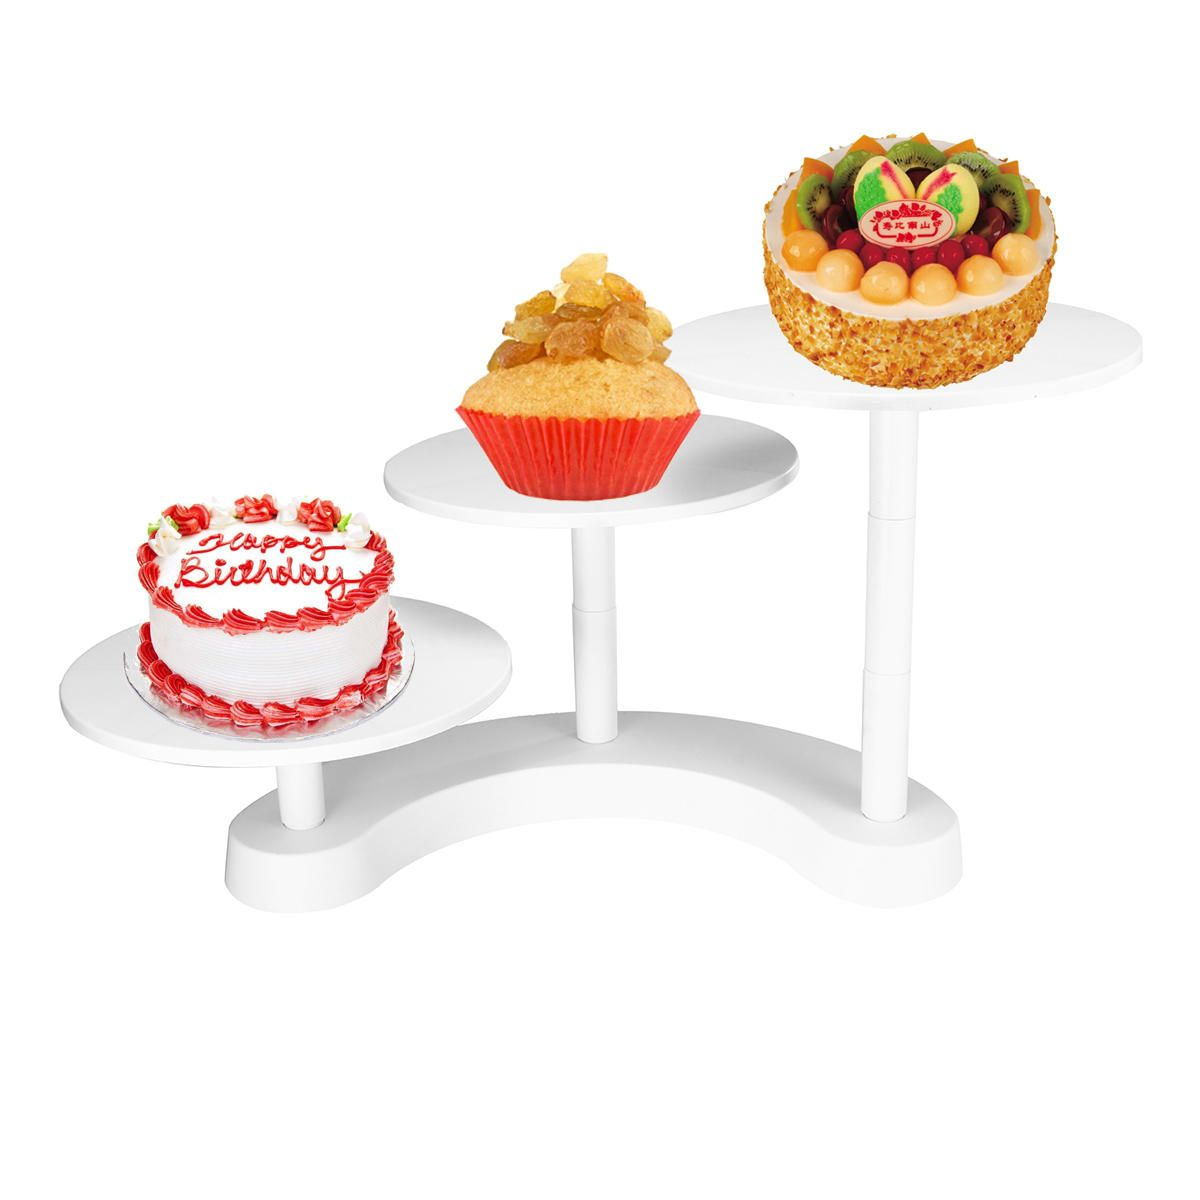 HVH US$30.33 White 3 Tiers Cake Stands Plastic Cupcake Dessert Wedding Birthday Party Display Decorations